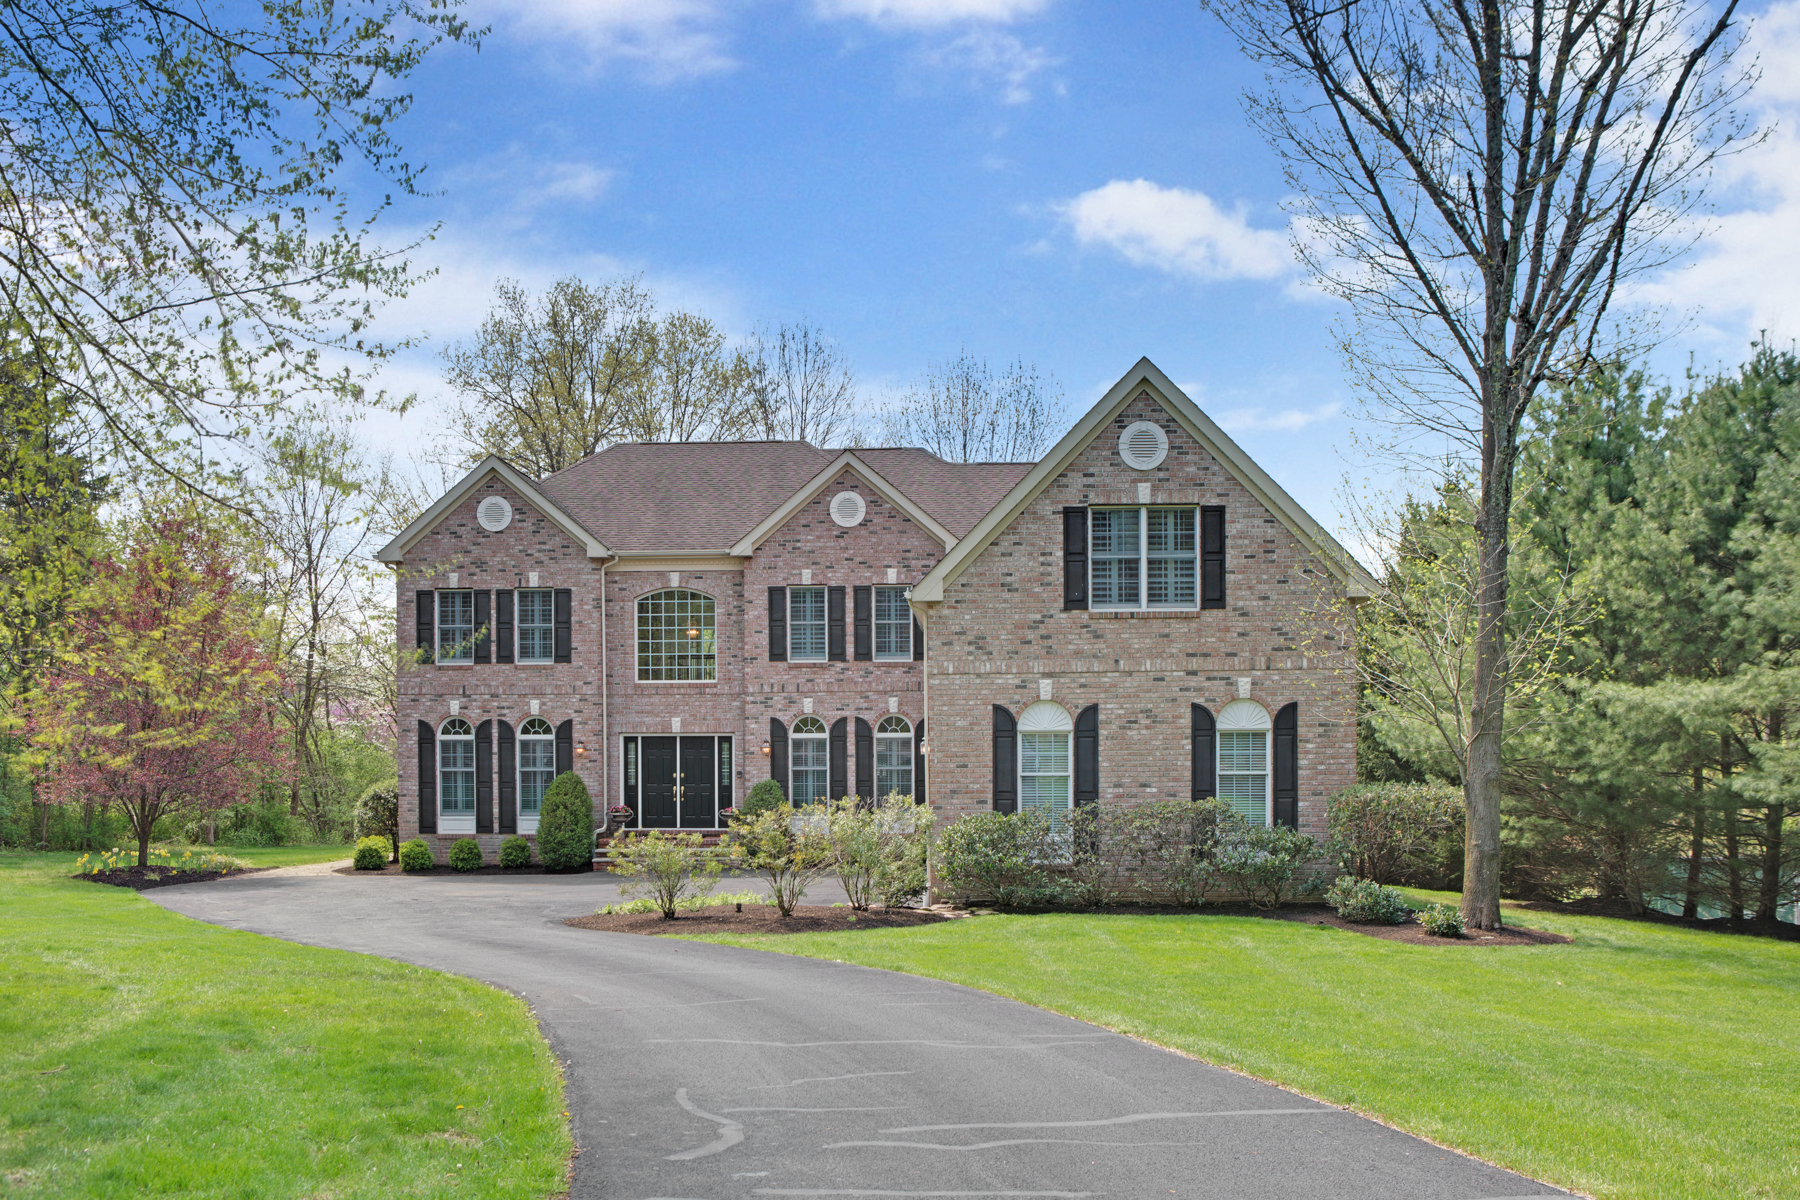 Single Family Home for Rent at Elegant Custom Home 477 Mount Airy Road Basking Ridge, 07920 United States